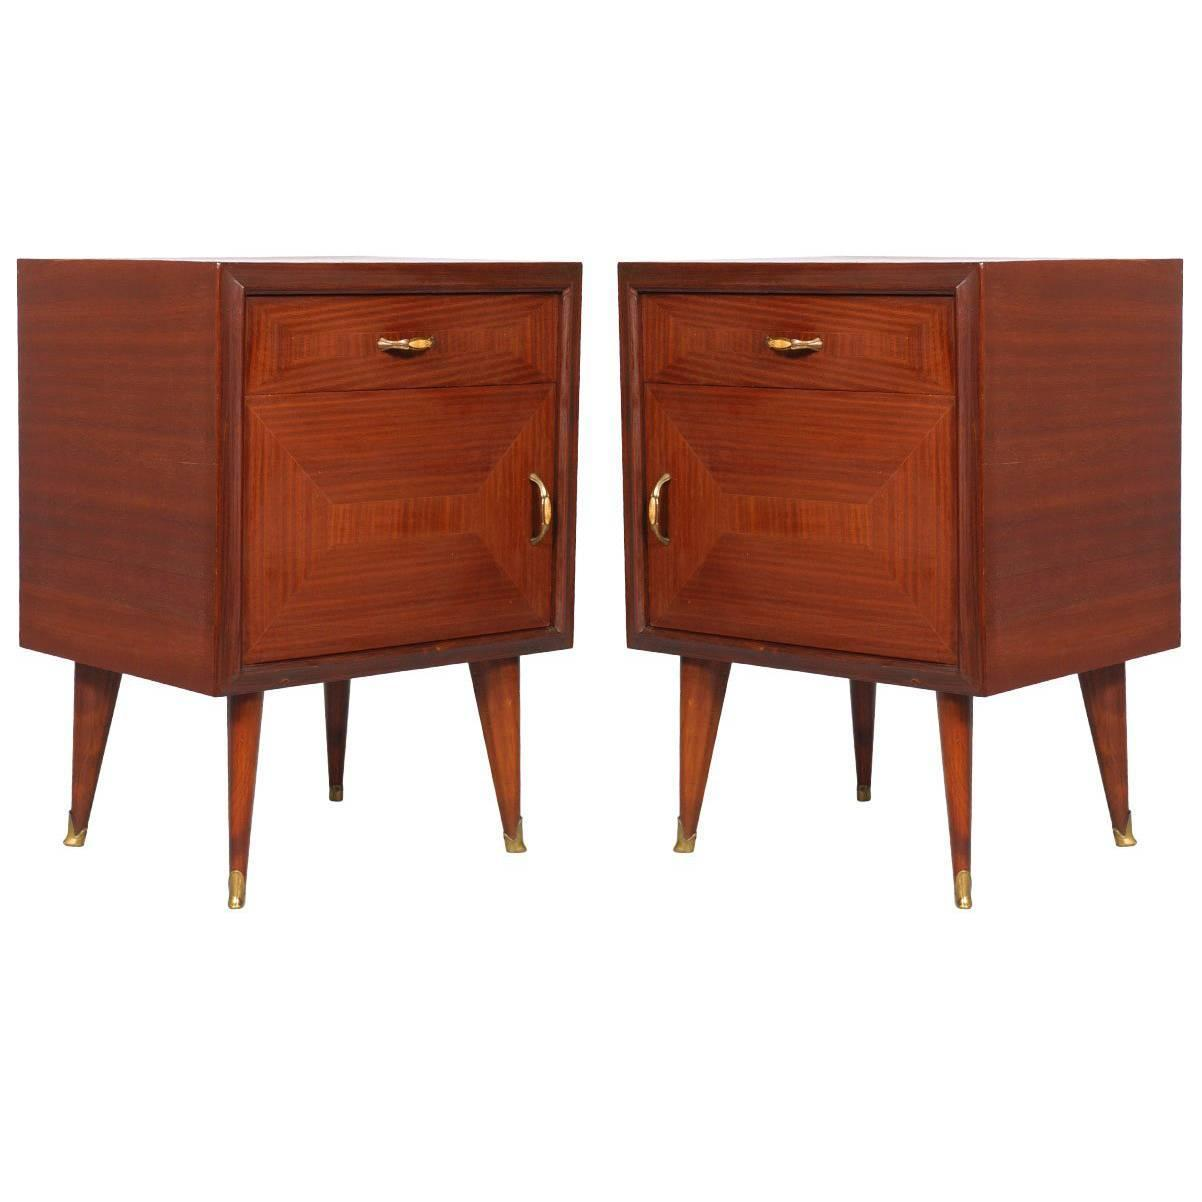 Pair of mid century modern nightstands walnut and mahogany 1940 gio ponti style at 1stdibs